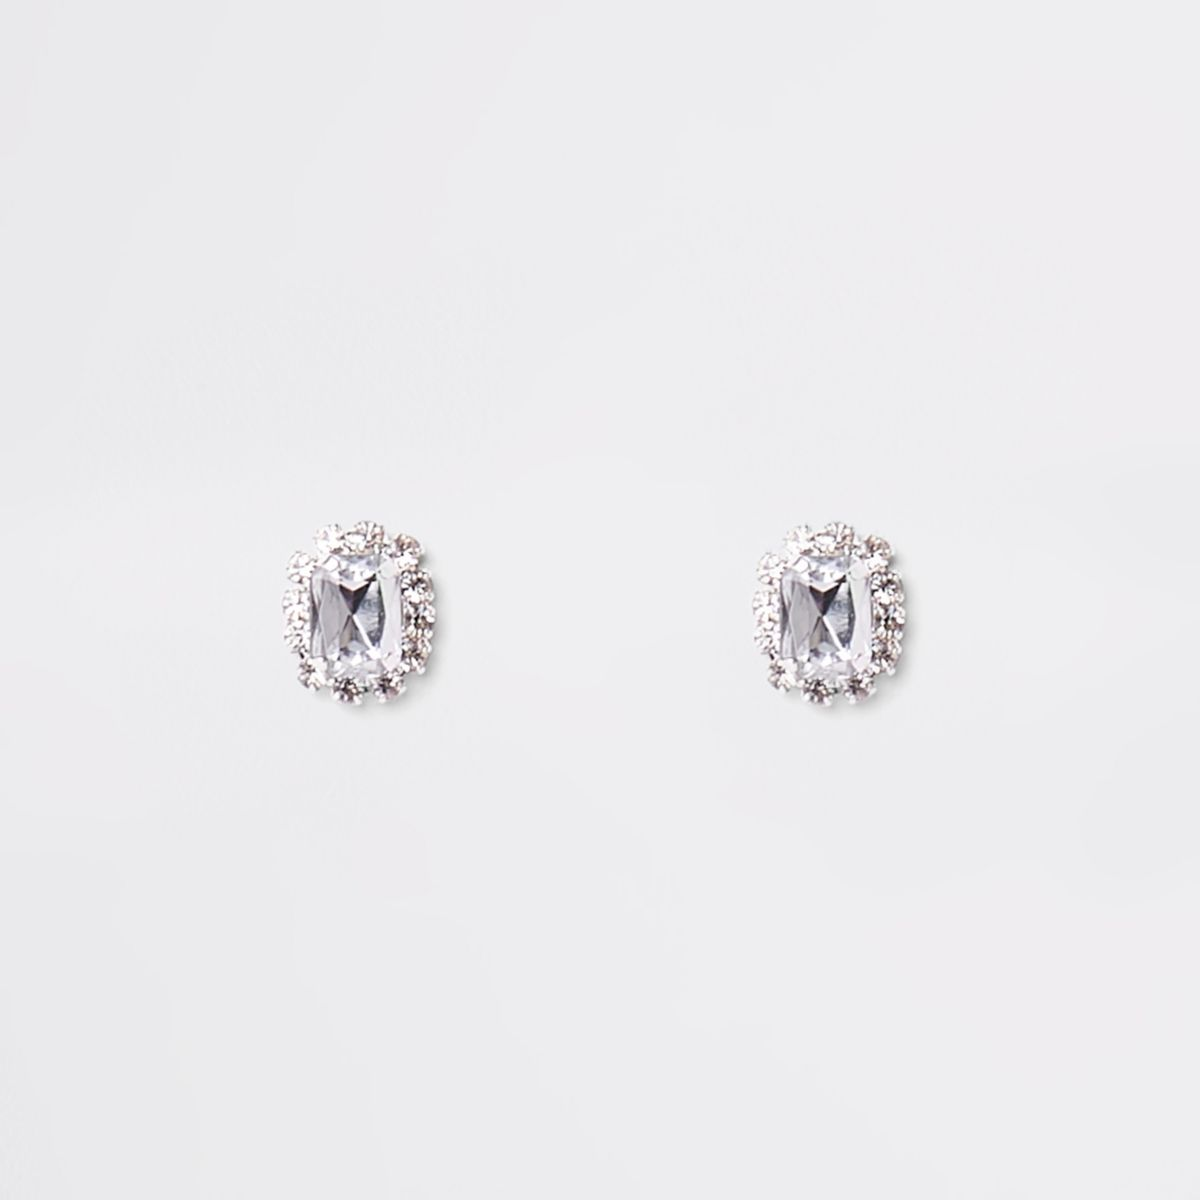 Silver tone rhinestone stone stud earrings